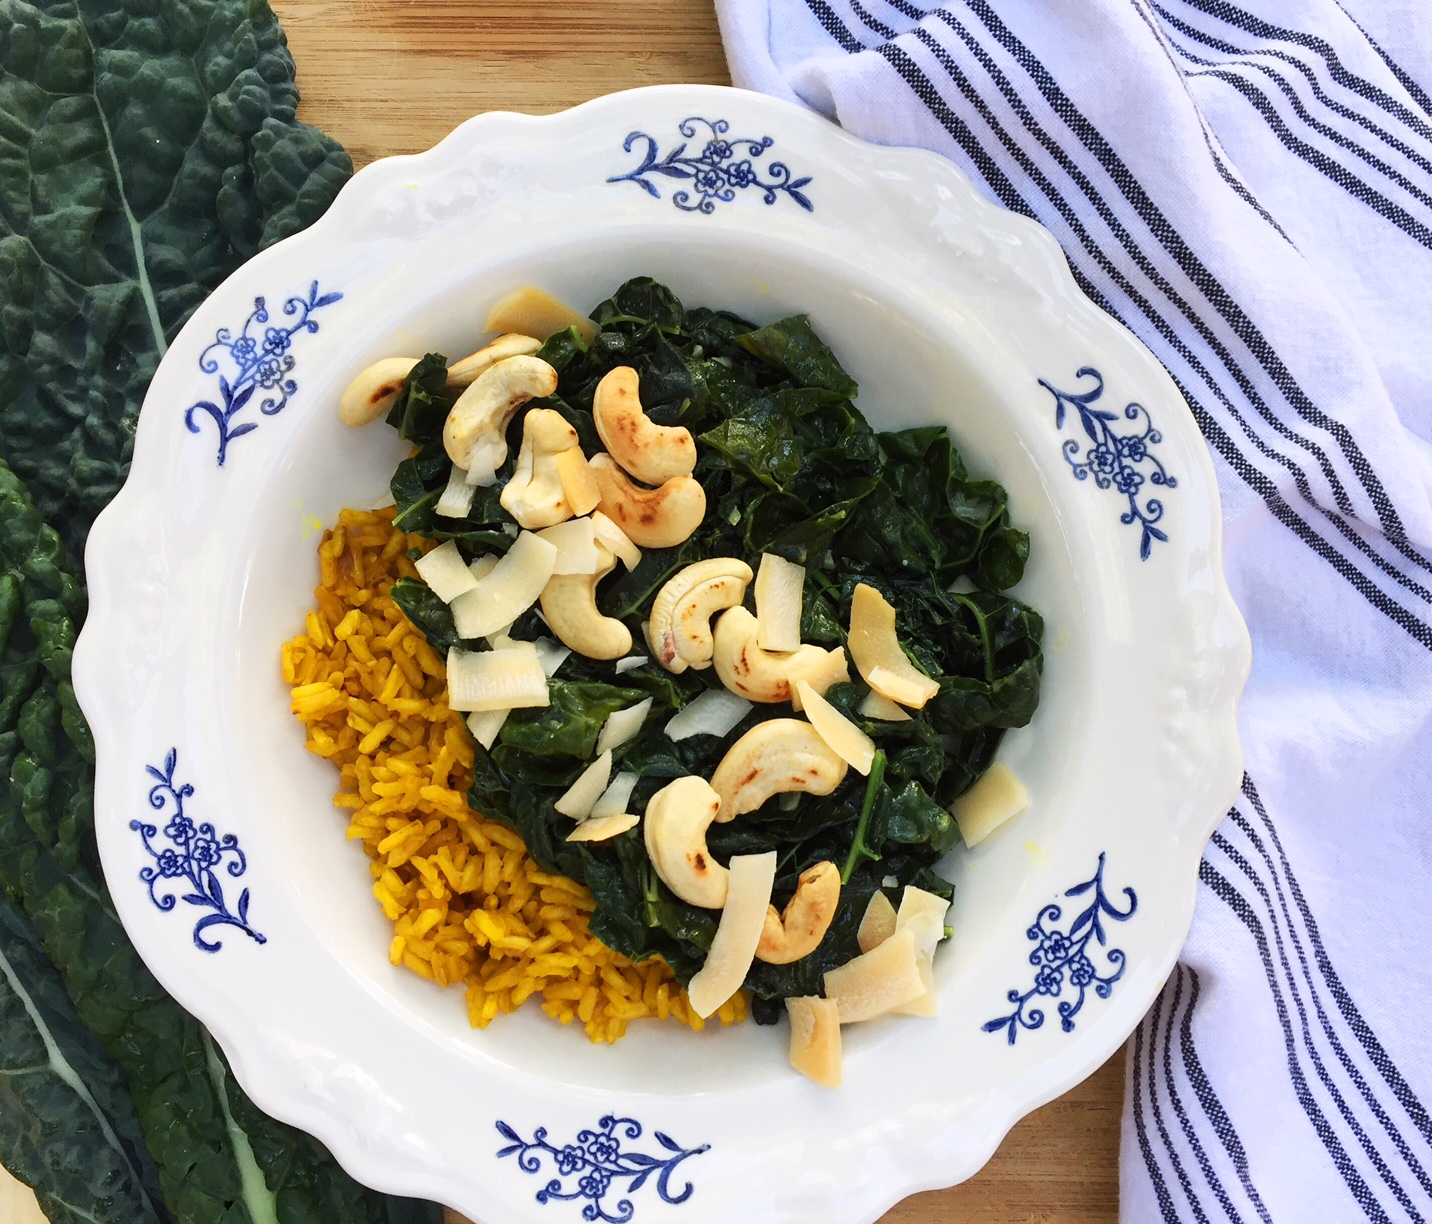 This vegan dish packs a healthy punch with superfoods such as kale, ginger, and turmeric spice. Try this for dinner and your taste buds (and body) will thank you.